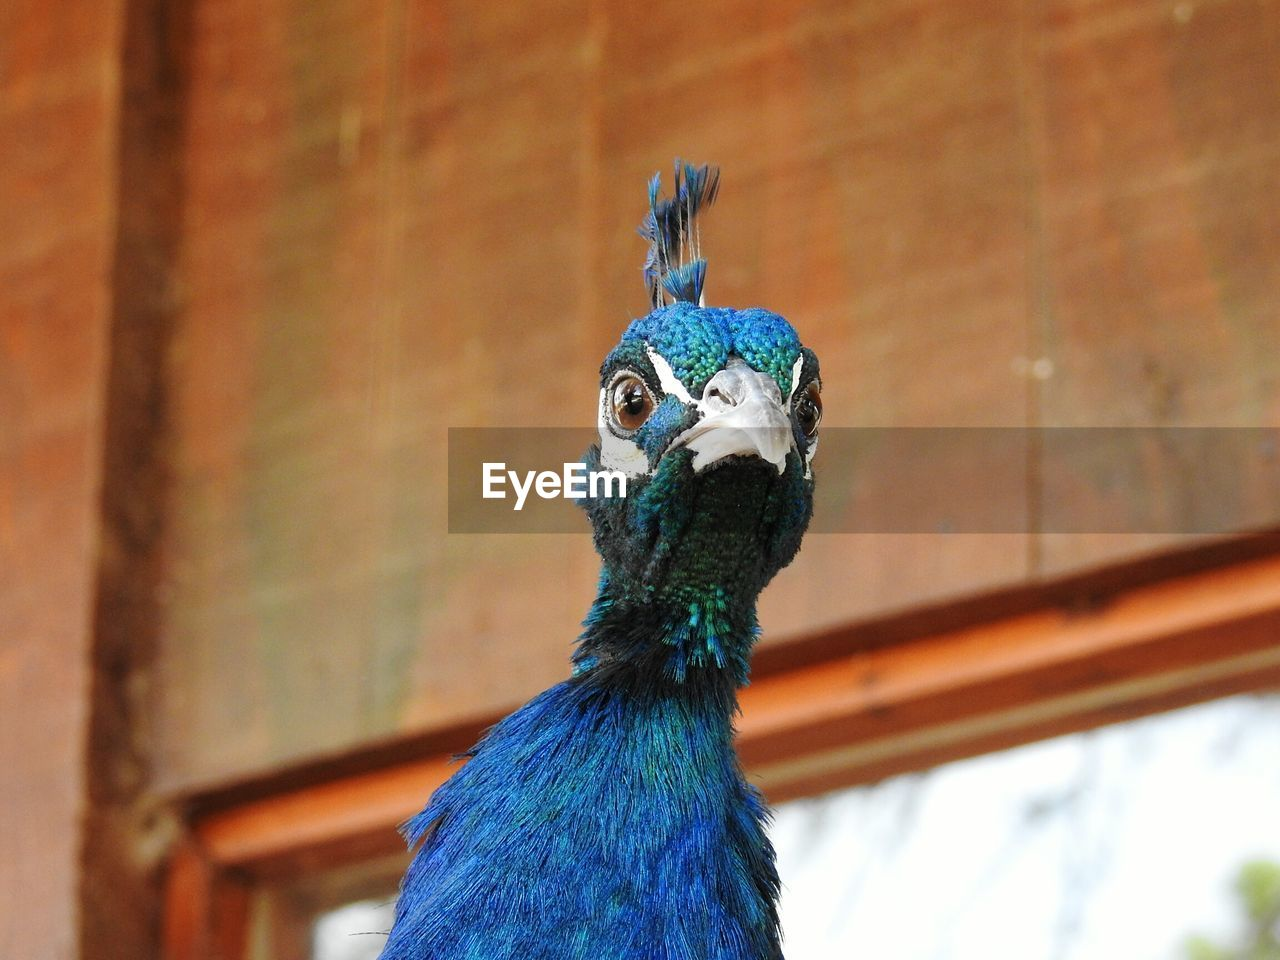 bird, animal themes, one animal, animal, vertebrate, peacock, animal wildlife, animals in the wild, focus on foreground, animal body part, blue, no people, animal head, close-up, animal's crest, day, beak, male animal, looking, feather, animal neck, animal eye